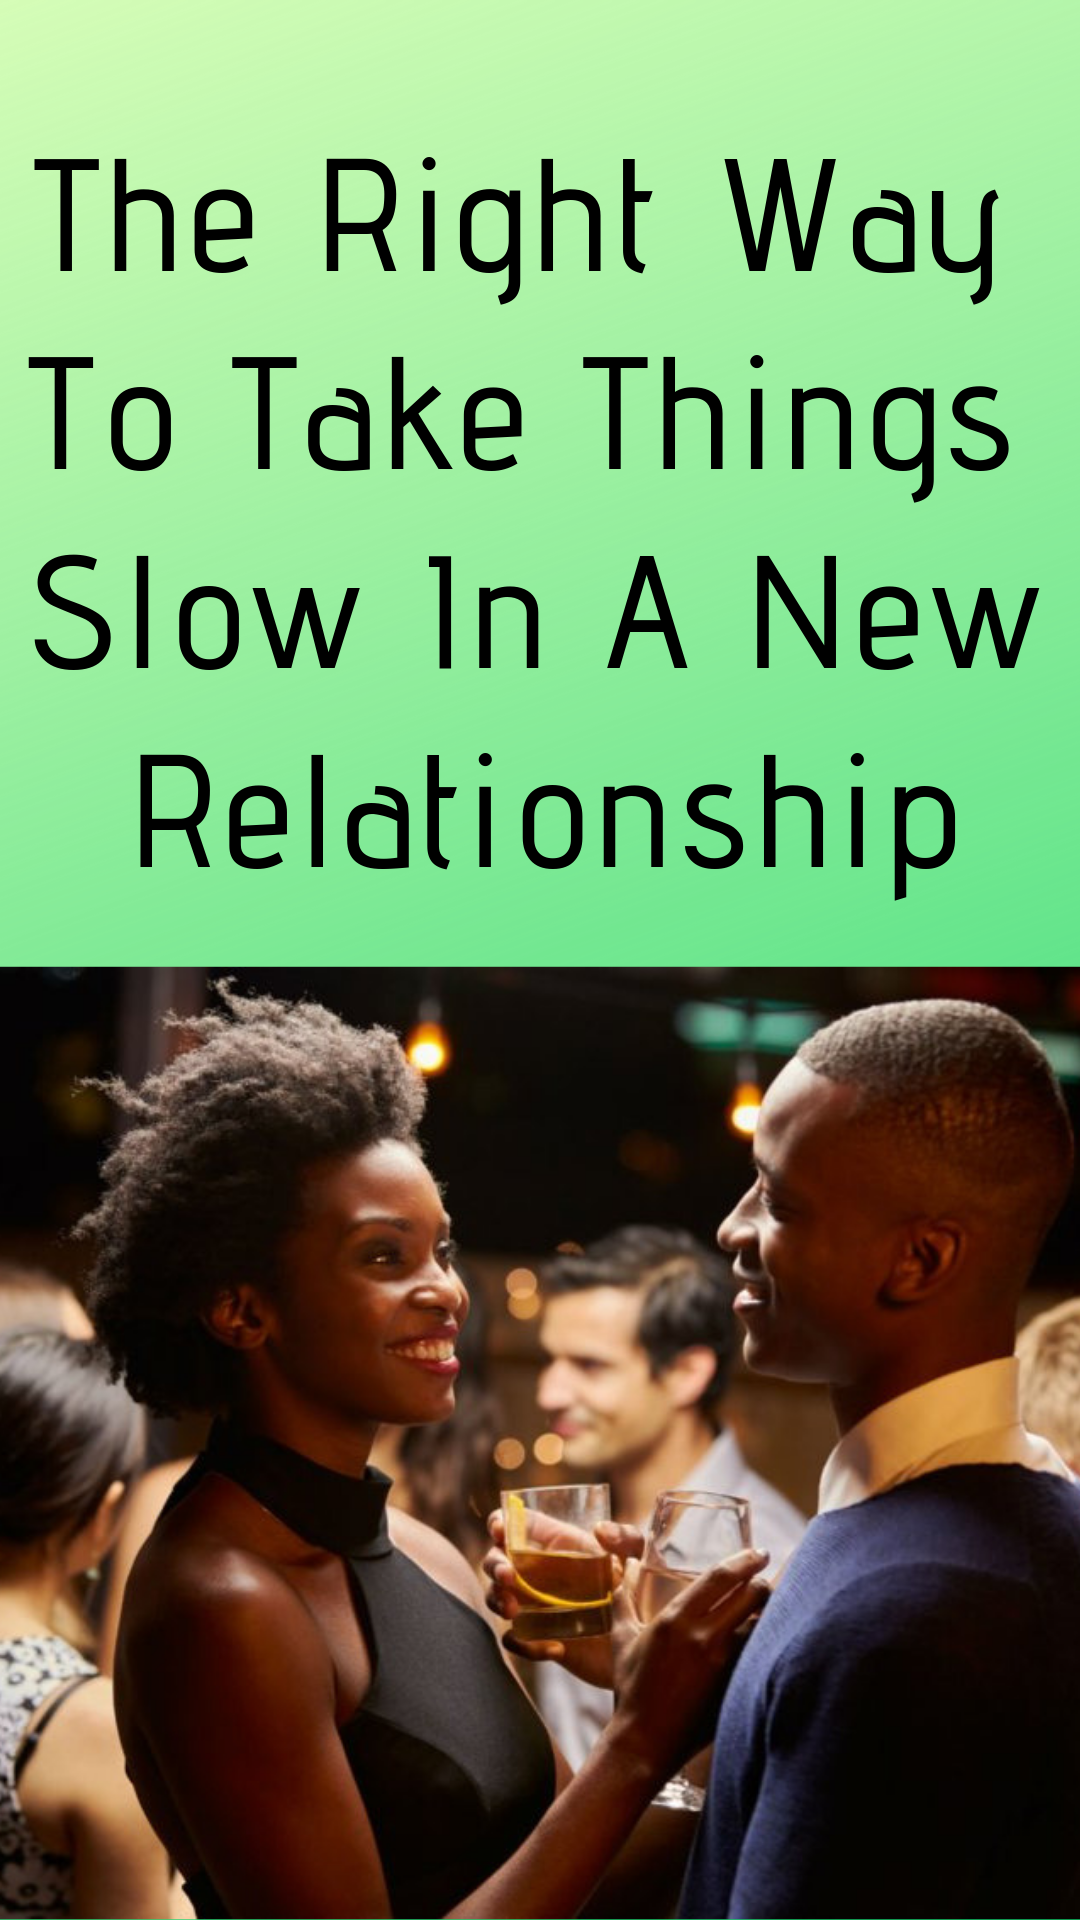 RUTH: Is moving too fast in a relationship a bad thing